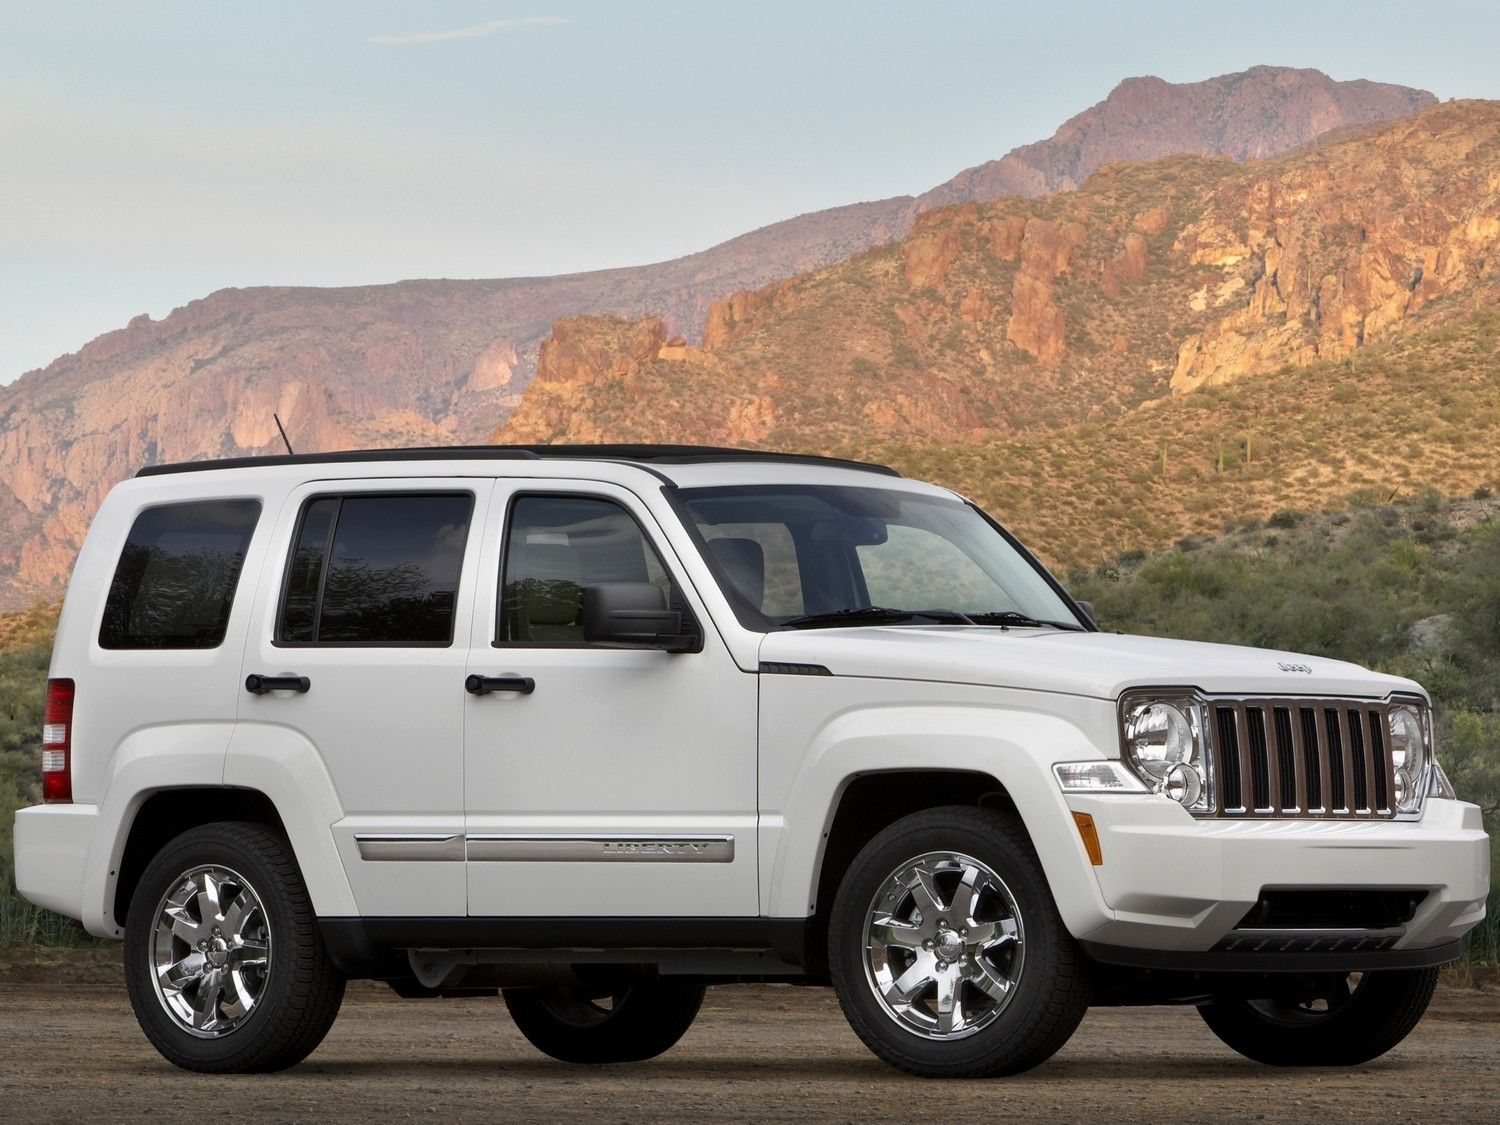 JEEP Cherokee/Liberty (KK) 2008-2012